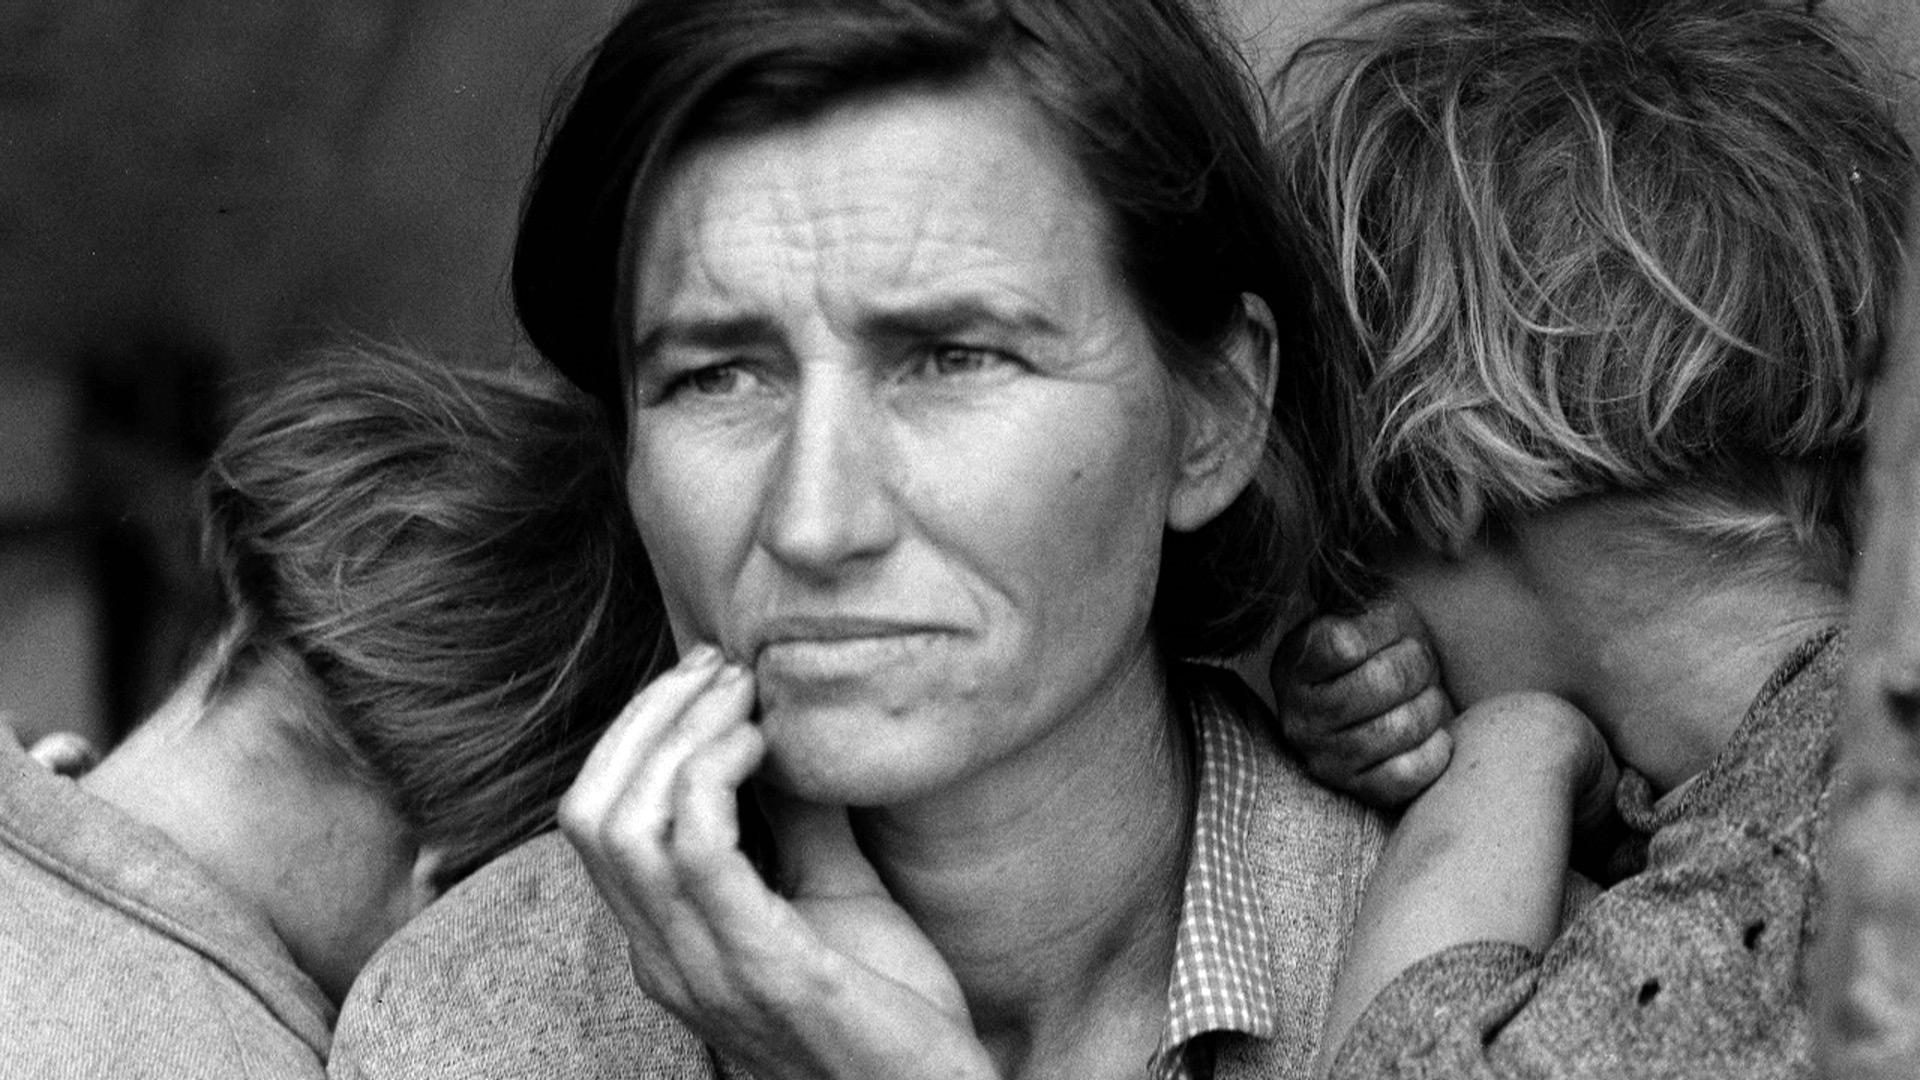 essay on dorothea lange photograph migrant mother All about dorothea lange, photographer listed on all about photo: dorothea   her best-known photographs, including the image known as migrant mother ( 1936)  extensively and producing photographic essays on ireland, egypt, and  asia.